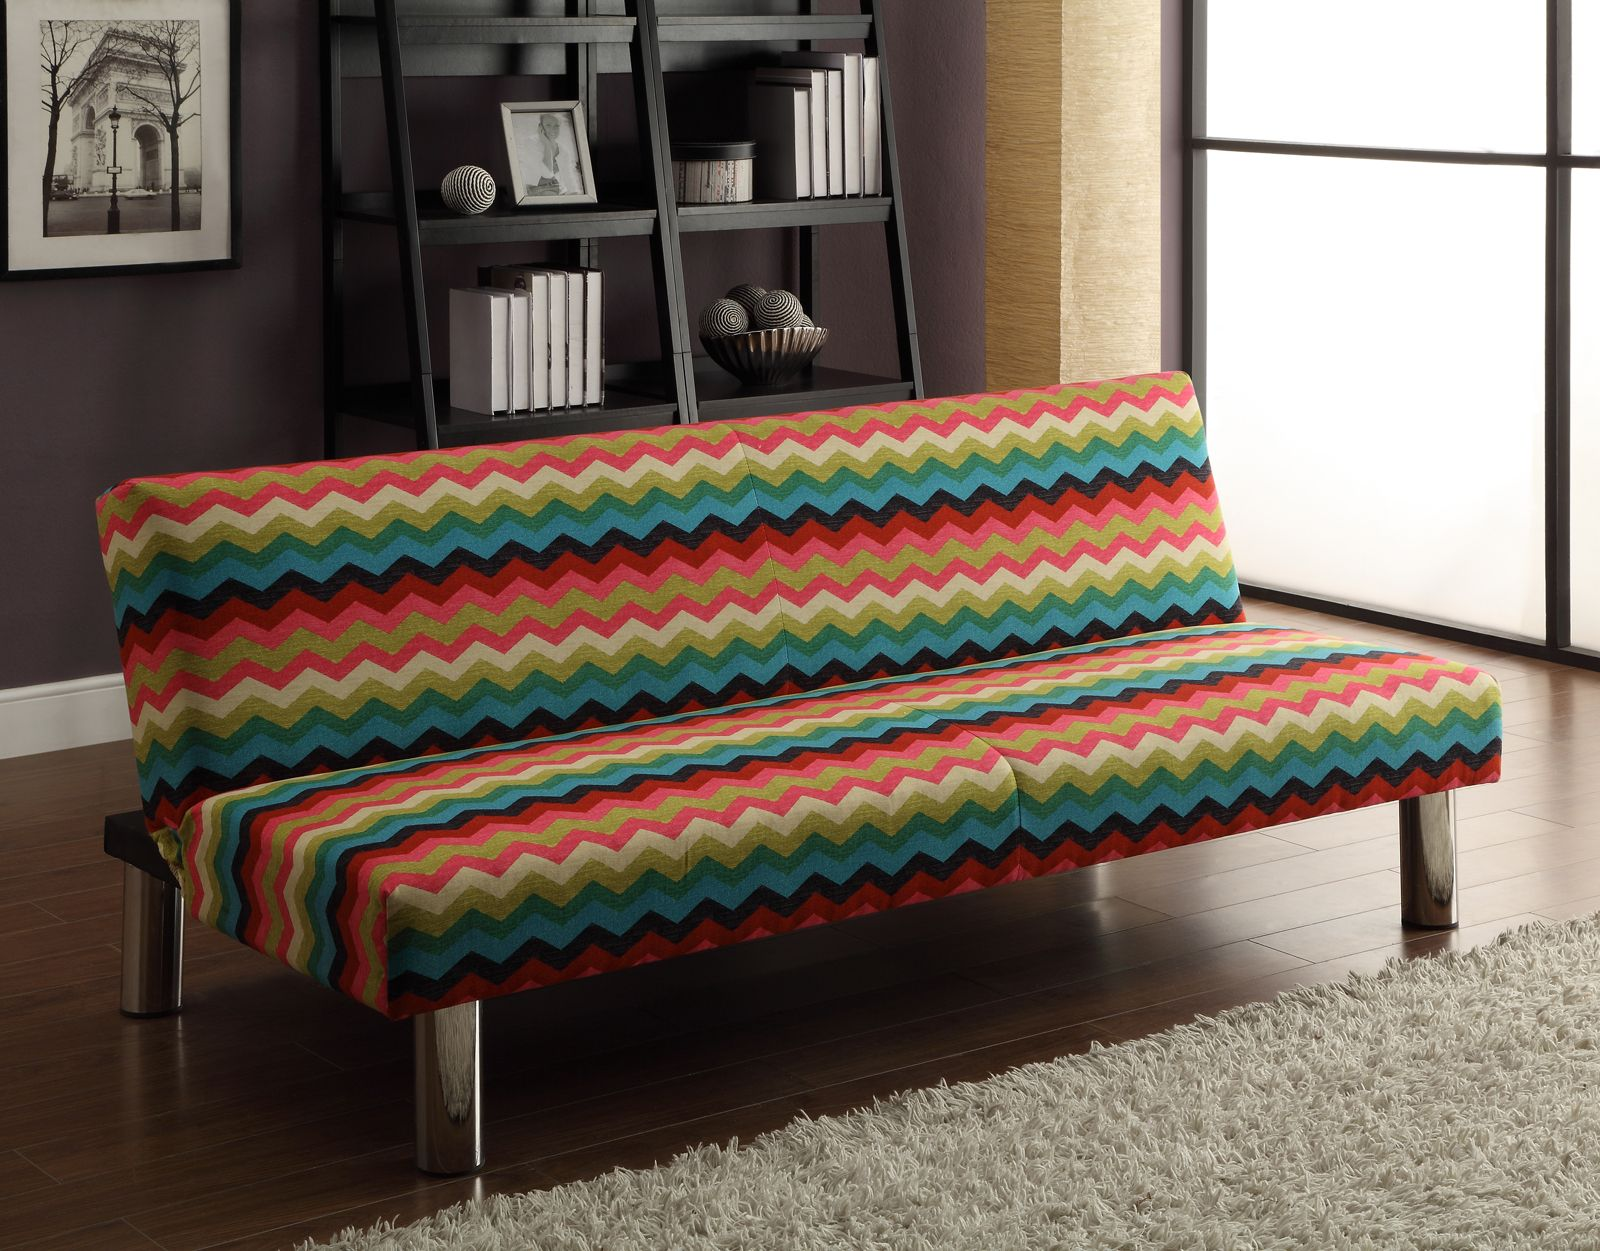 Dorel Home Products Suite 9A of C Waverly Chevron pattern futon